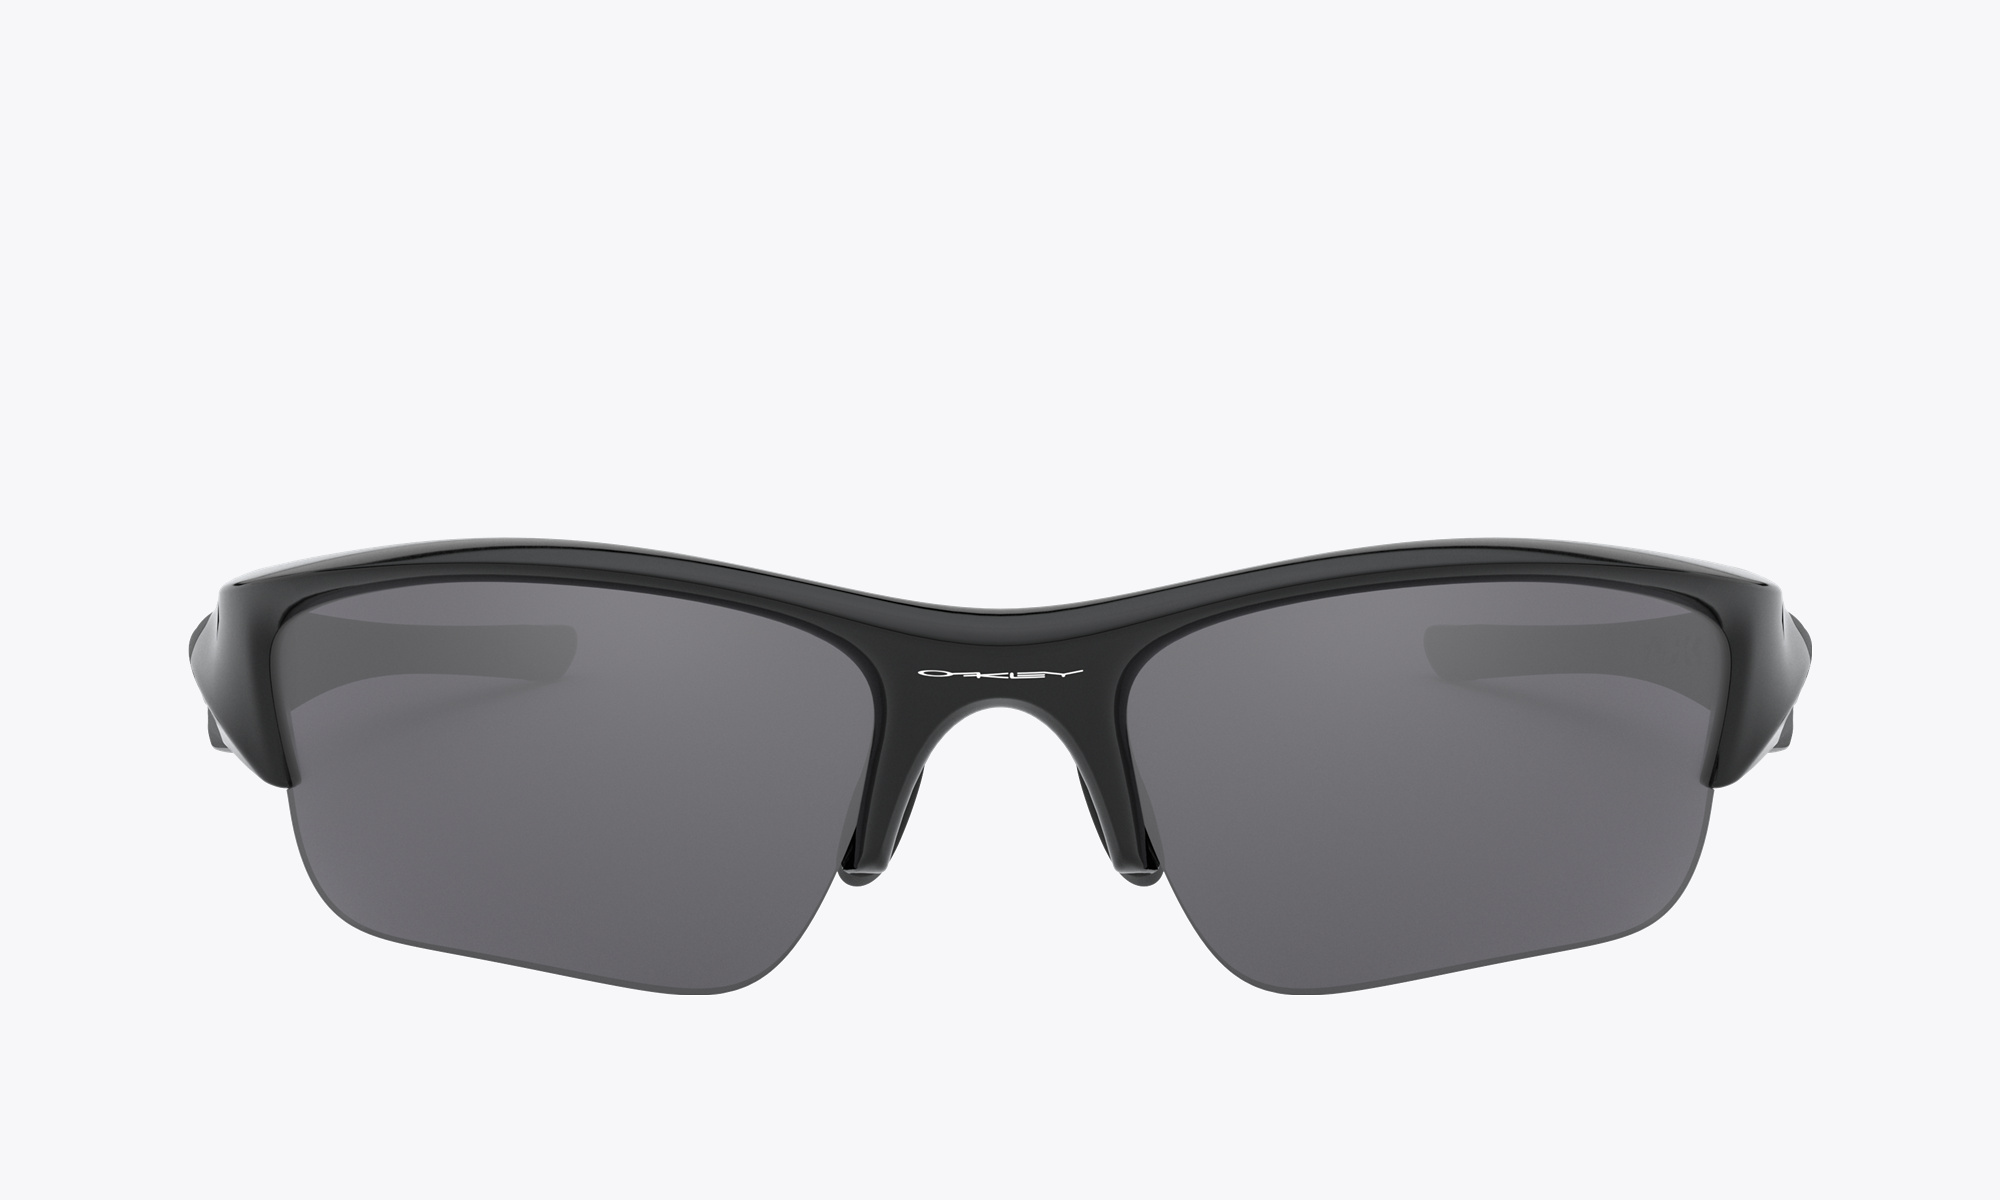 Flak Jacket Xlj >> Oakley Flak Jacket Xlj Glasses Coma Free Shipping